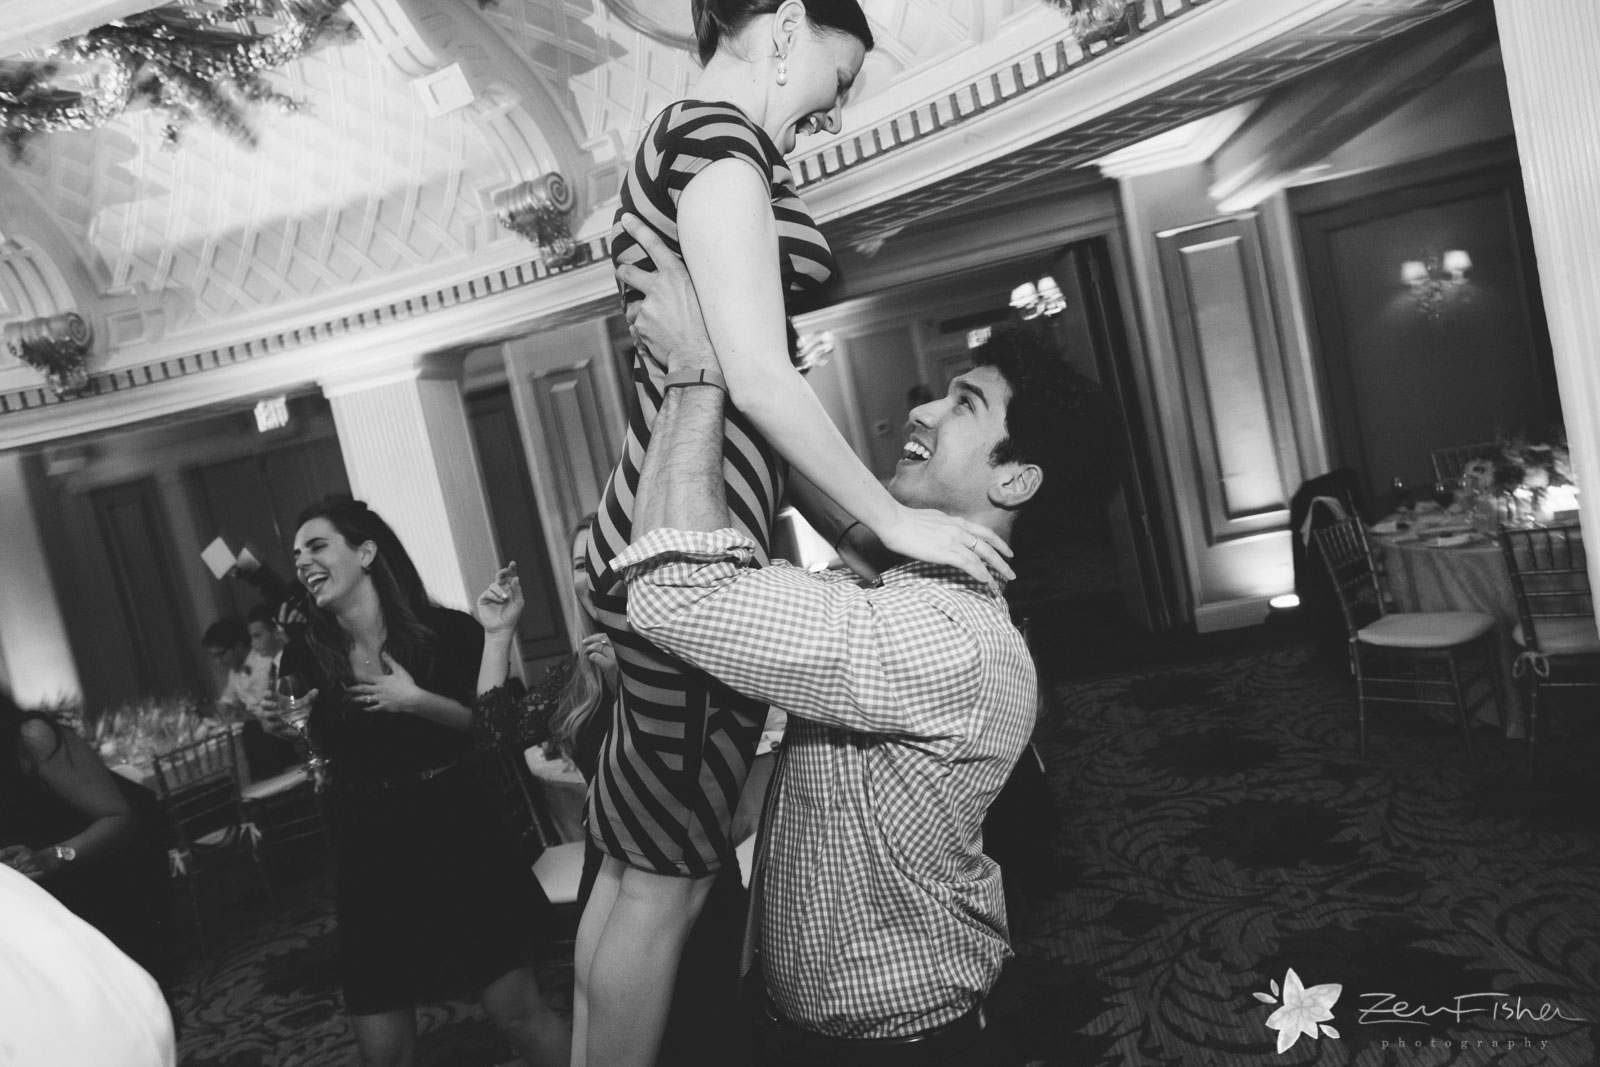 Guests being silly of the dance floor, man lifts woman in the air.